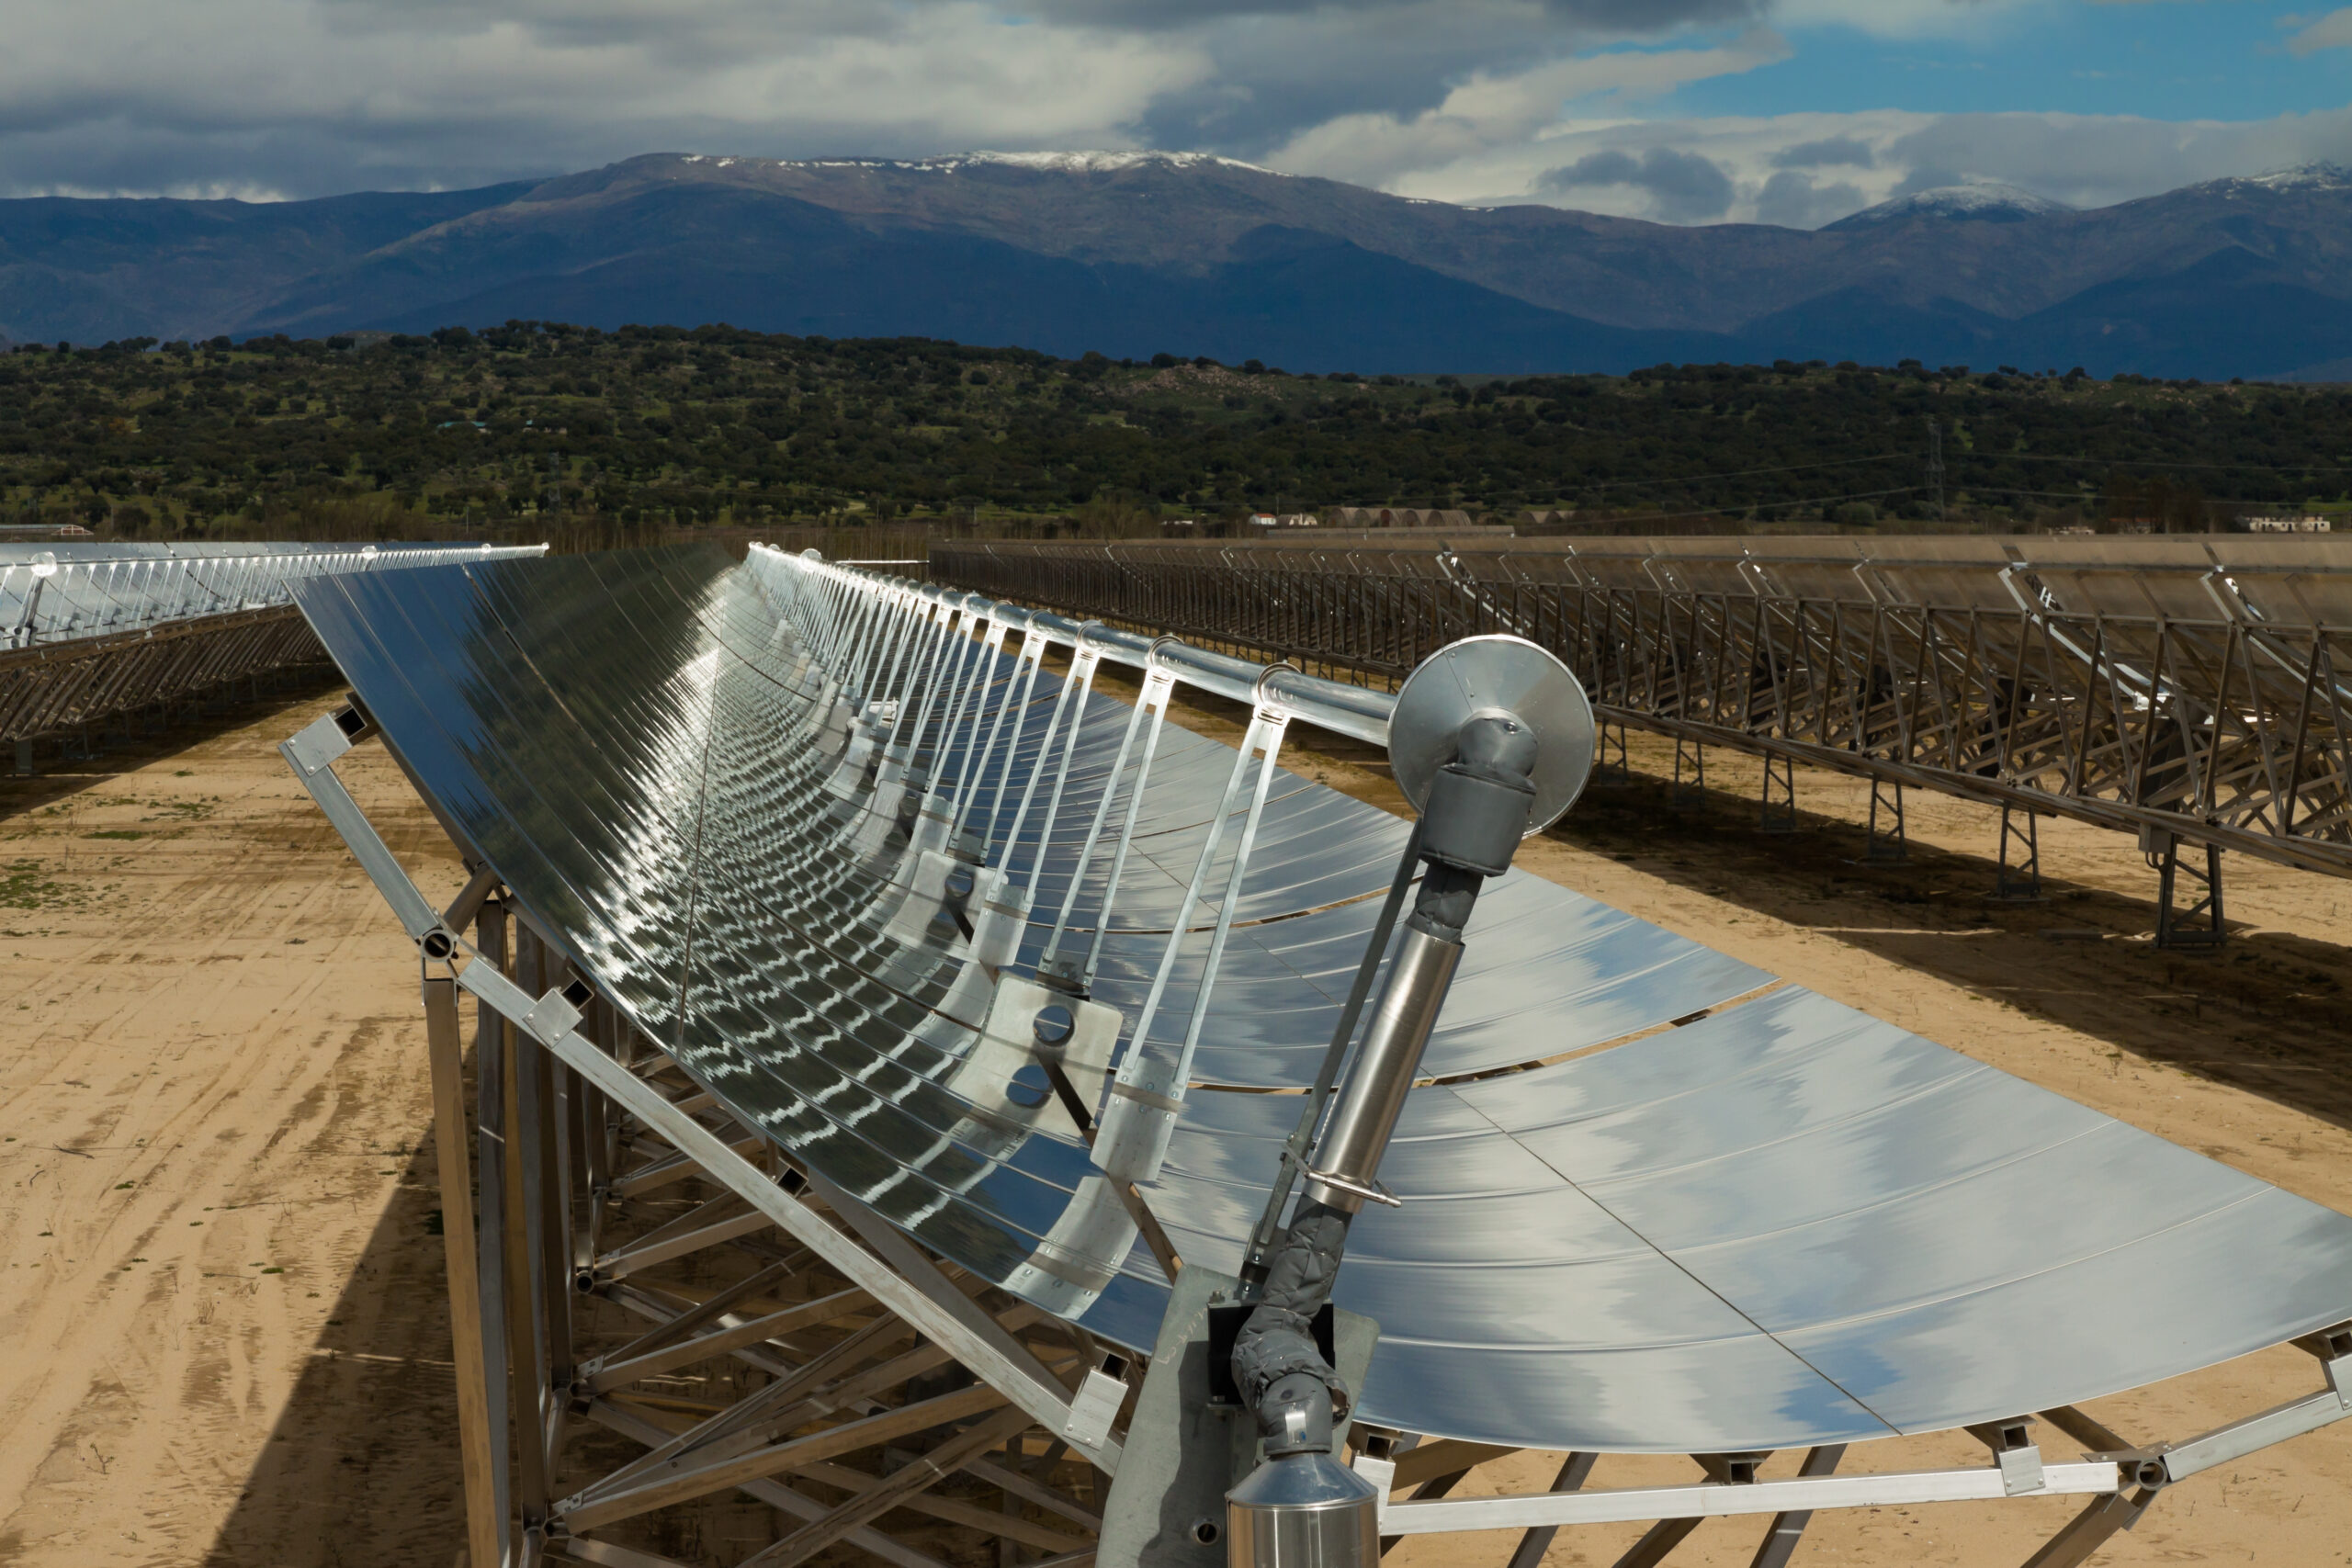 A parabolic trough collector directing solar energy to generate CSP.